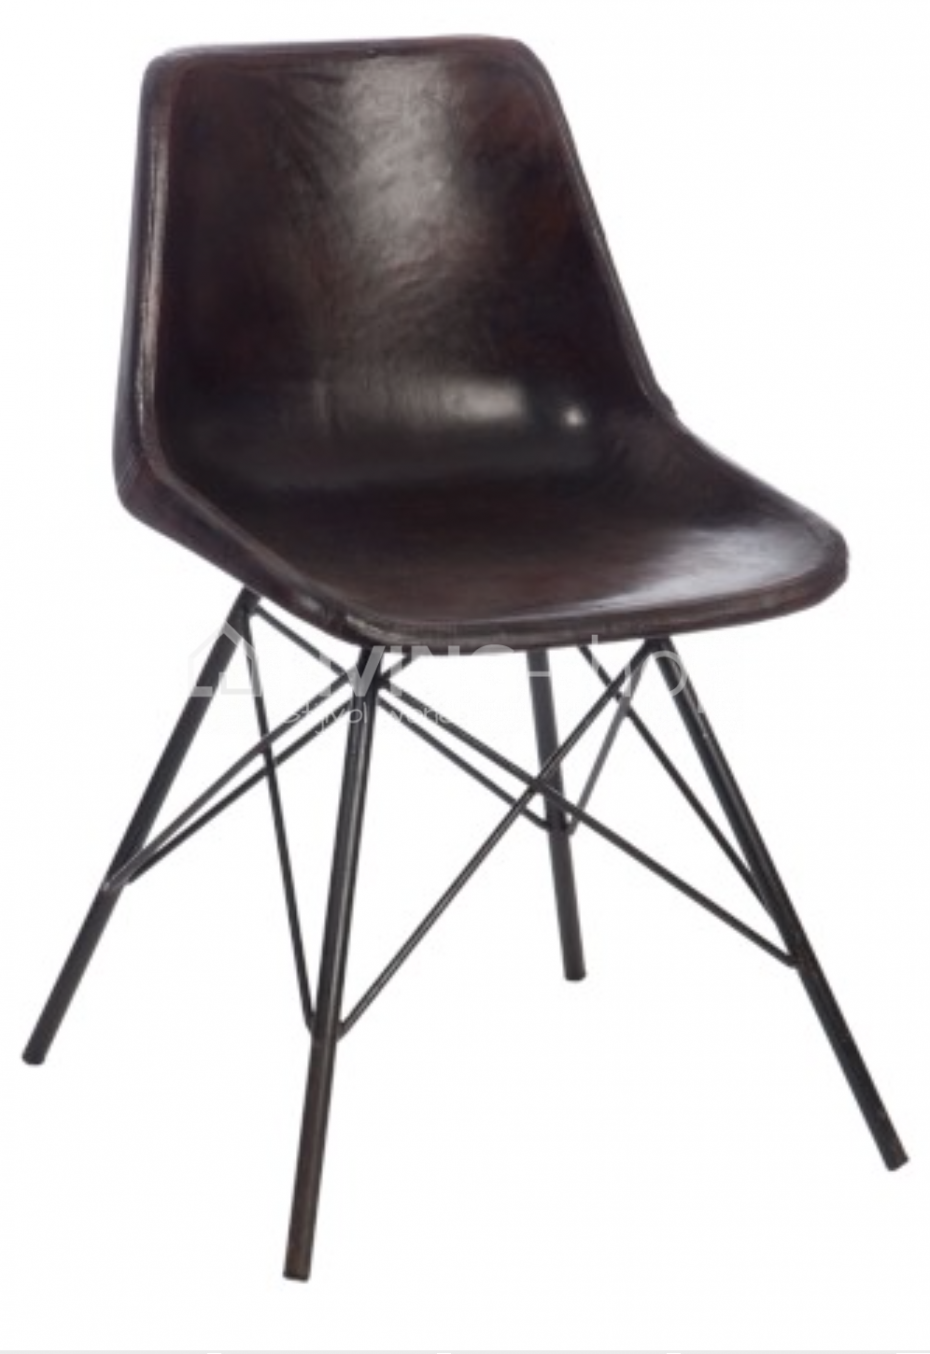 eames replica marron cuir vente en ligne living shop boutique web. Black Bedroom Furniture Sets. Home Design Ideas